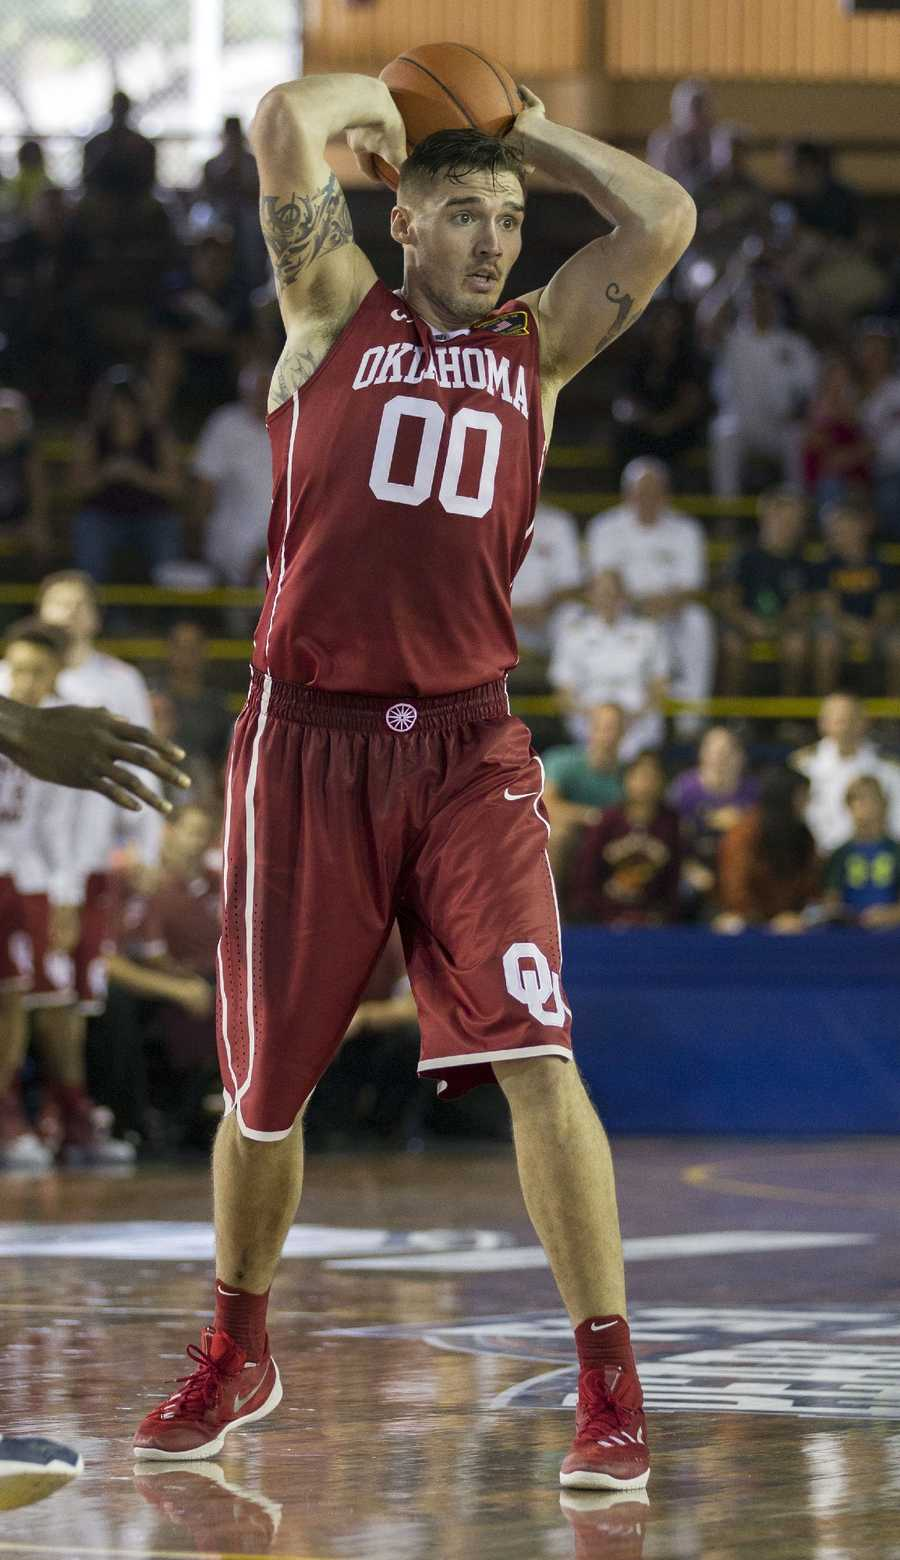 Oklahoma forward Ryan Spangler looks for an open teammate to pass to while playing against Villanova in the first half of an NCAA college basketball game at the Pearl Harbor Invitational on Monday, Dec. 7, 2015, in Honolulu.